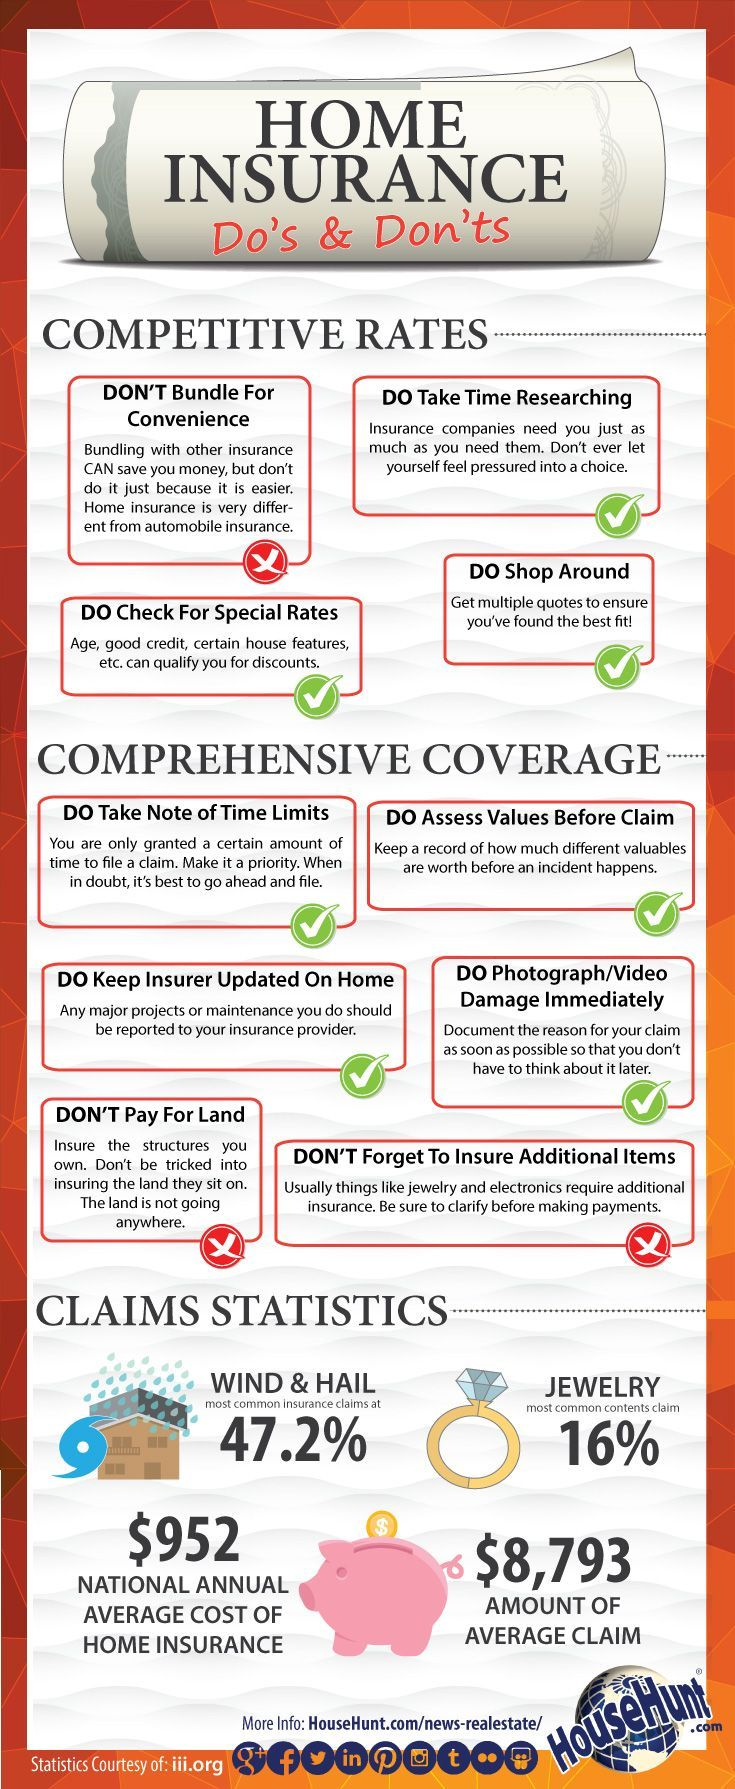 Homeowners Insurance Quote Stunning 19 Best Home Insurance Images On Pinterest  Home Insurance Real . Decorating Inspiration